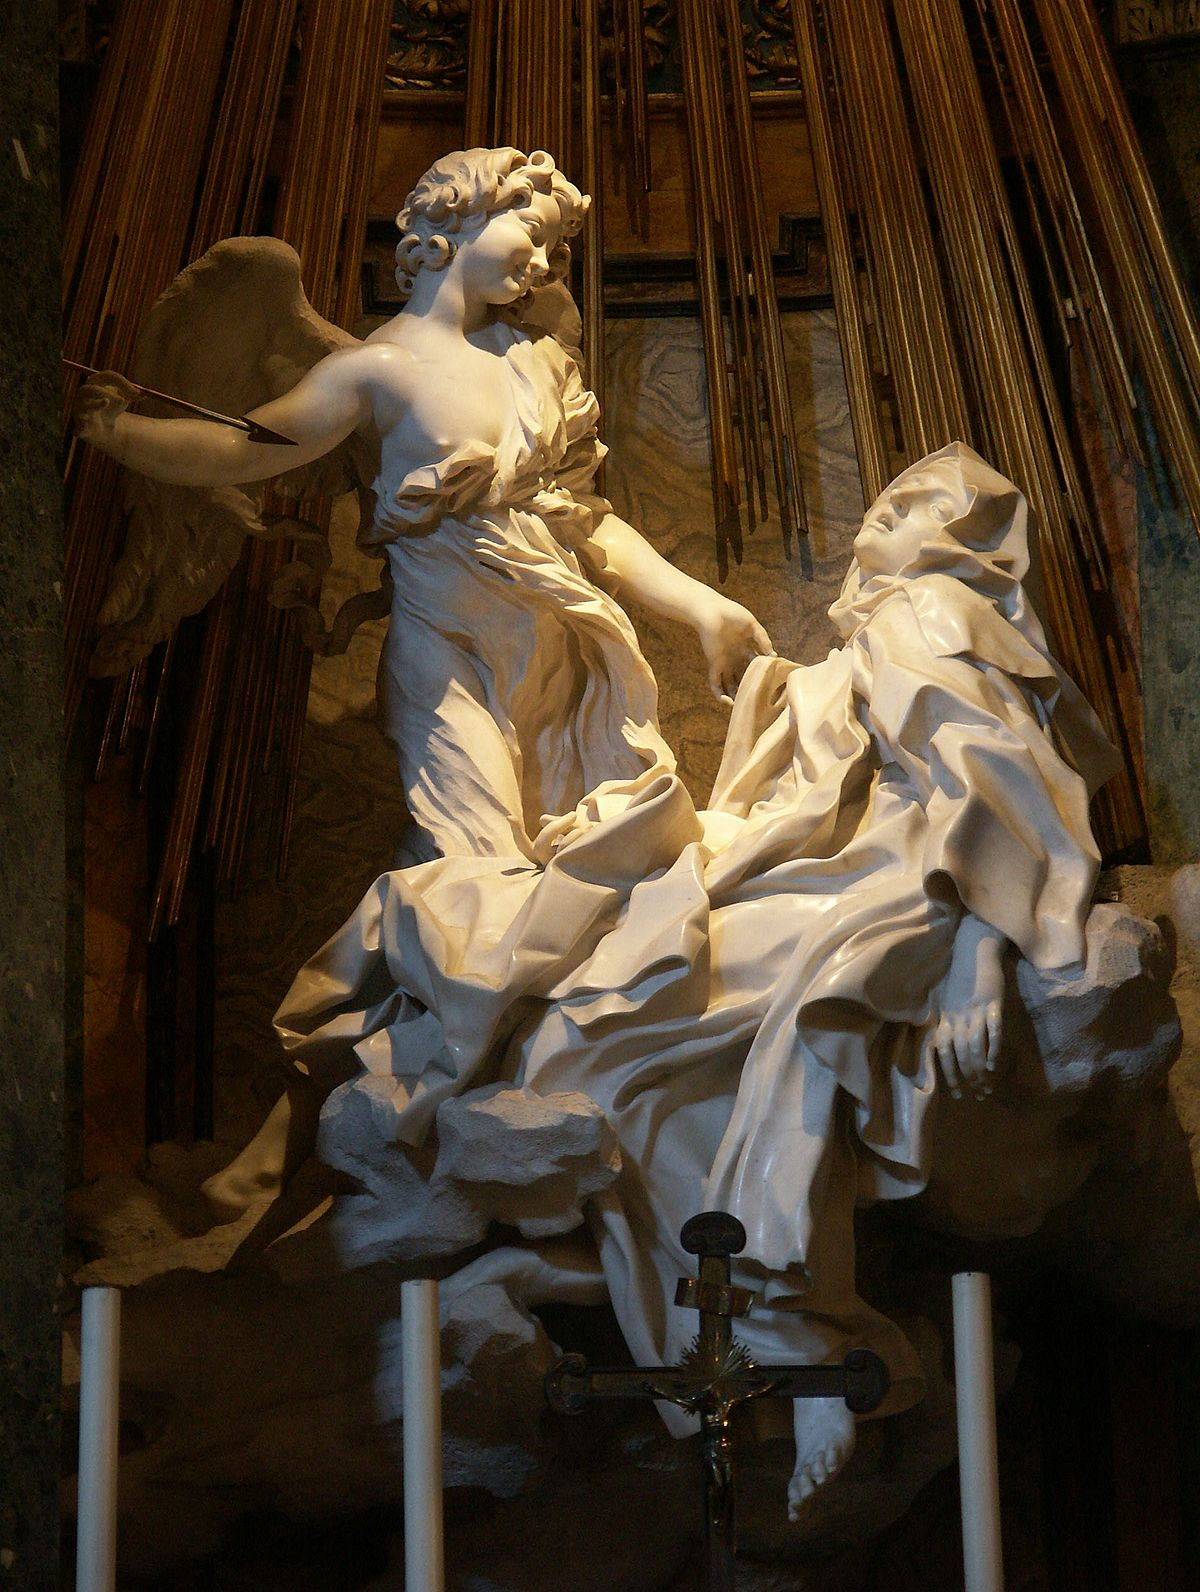 Baroque sculpture - Wikipedia